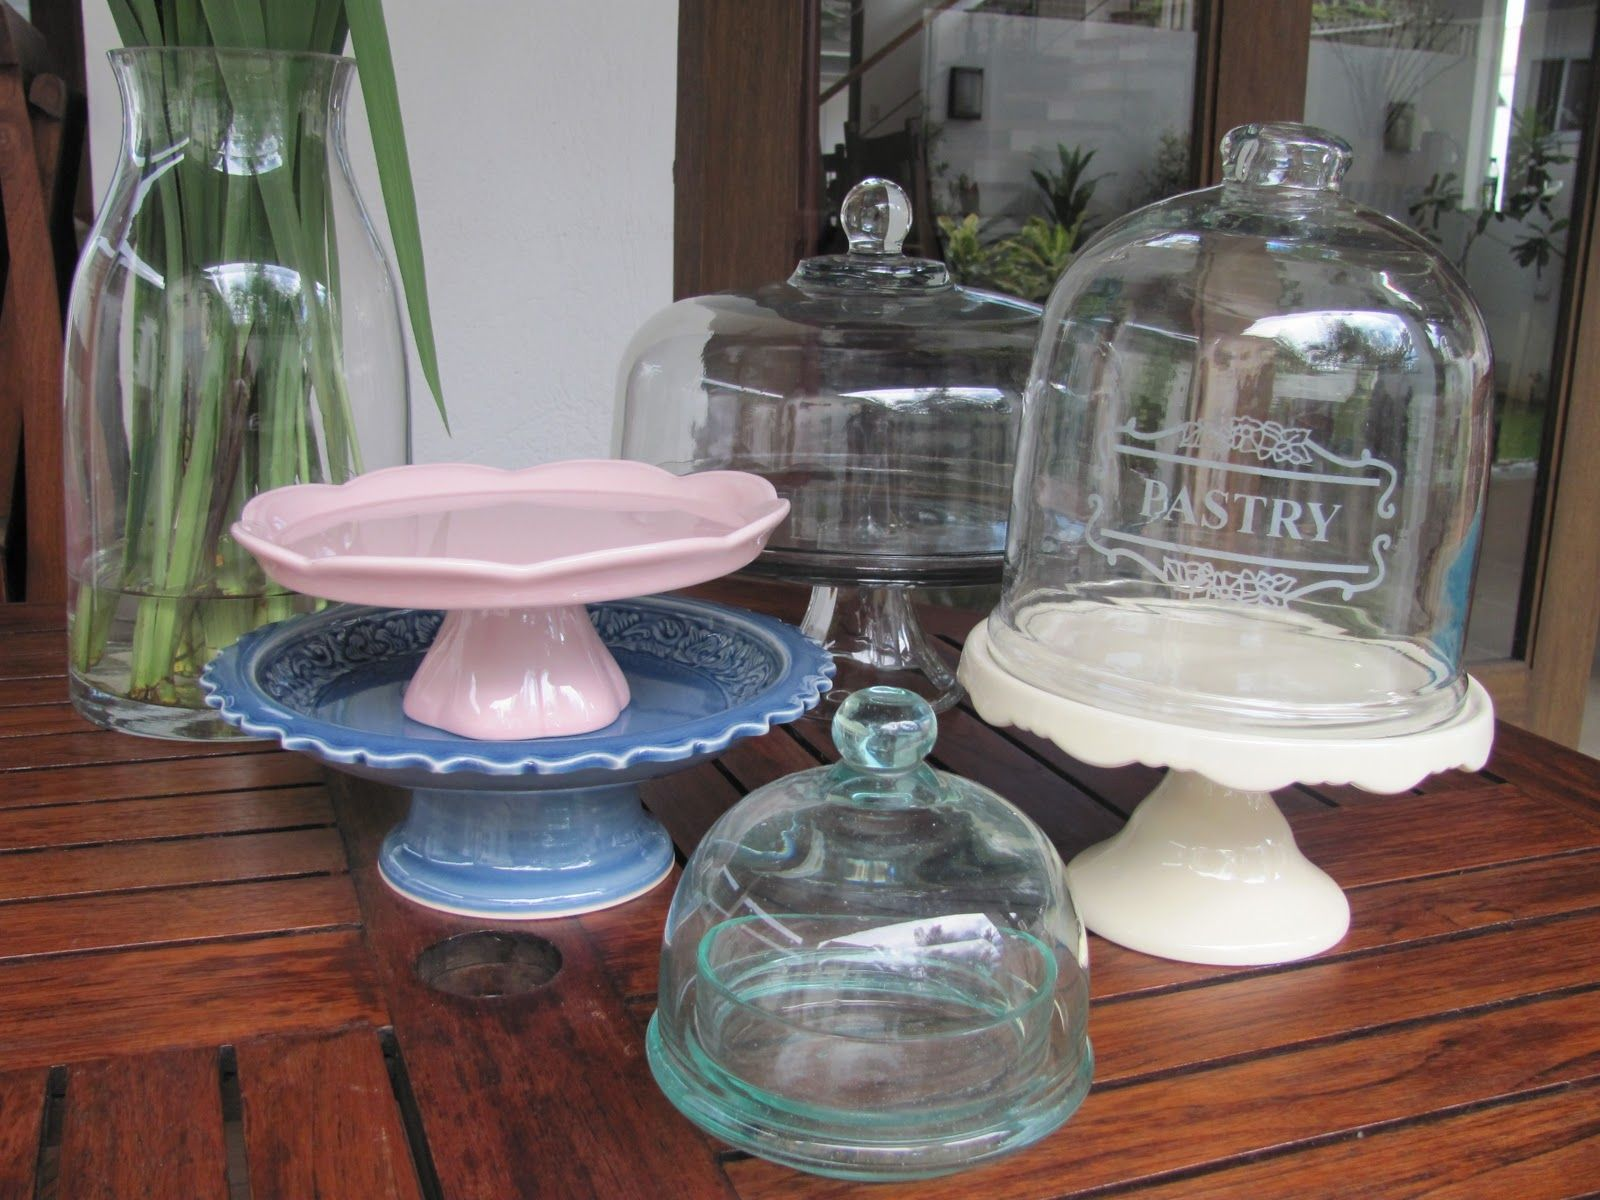 Several pretty cake plates Different styles & colors